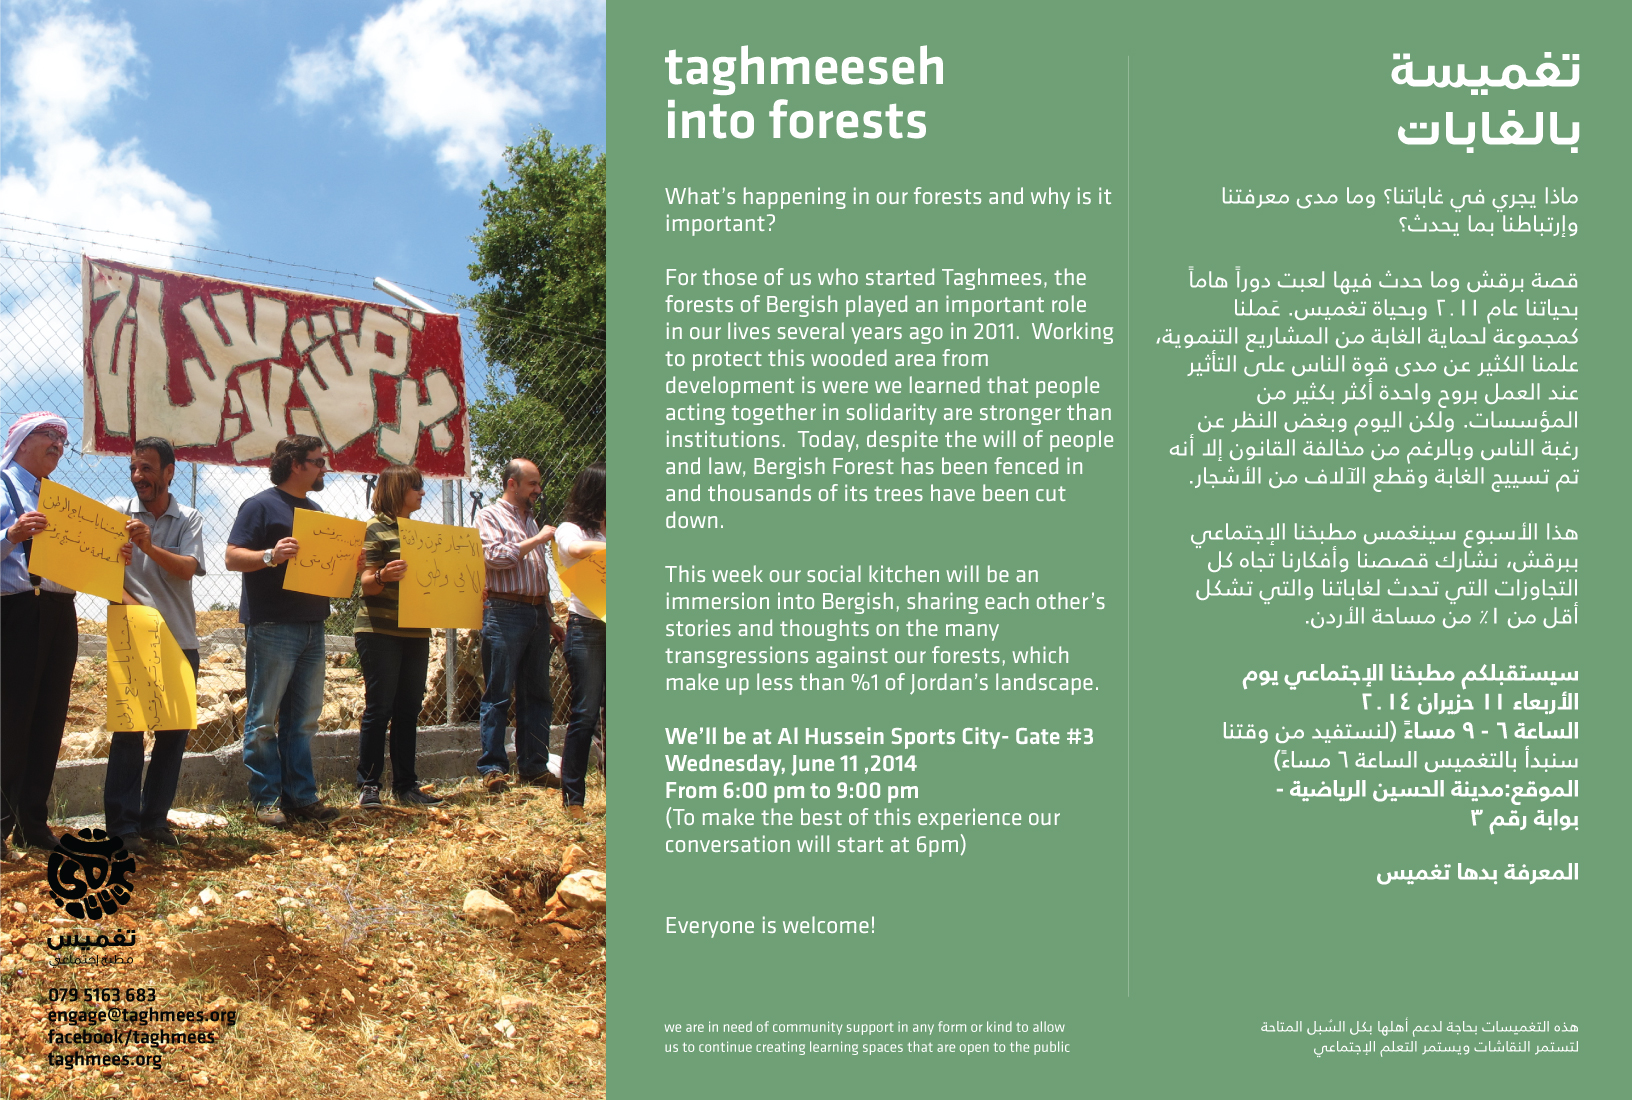 Taghmeeseh-into-forests-